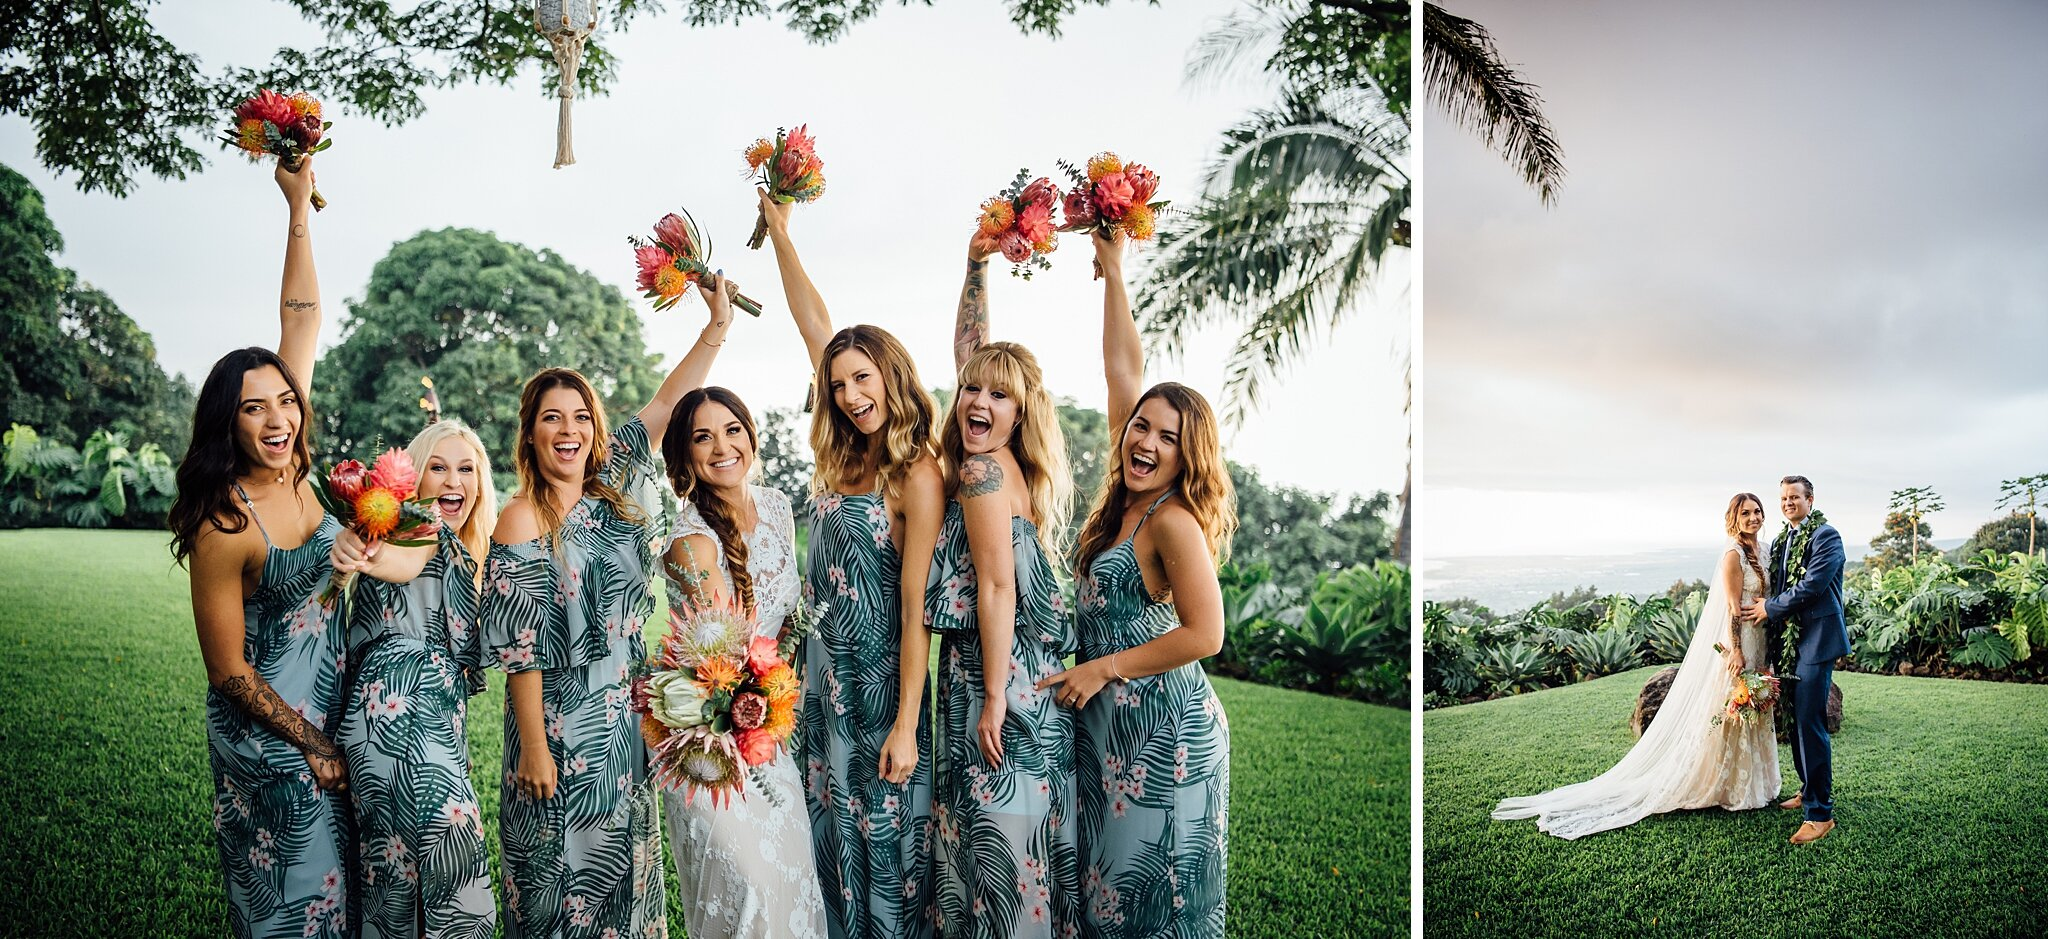 Big Island Wedding Venue at Holualoa Inn by Ann Ferguson Photography